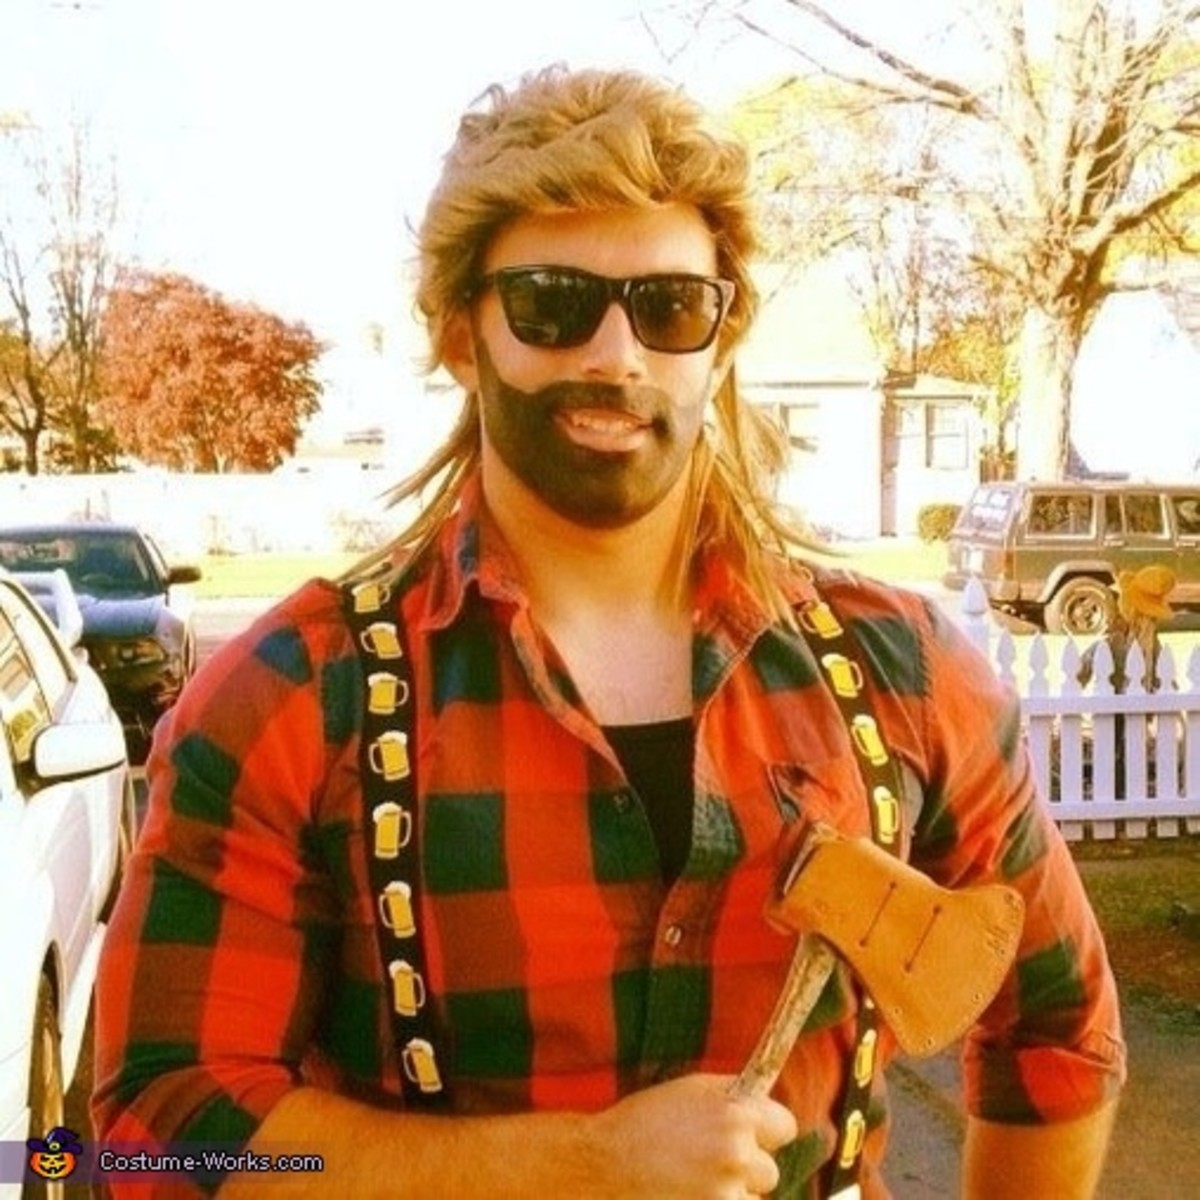 This guy dresses as a lumberjack using clothes he found at home